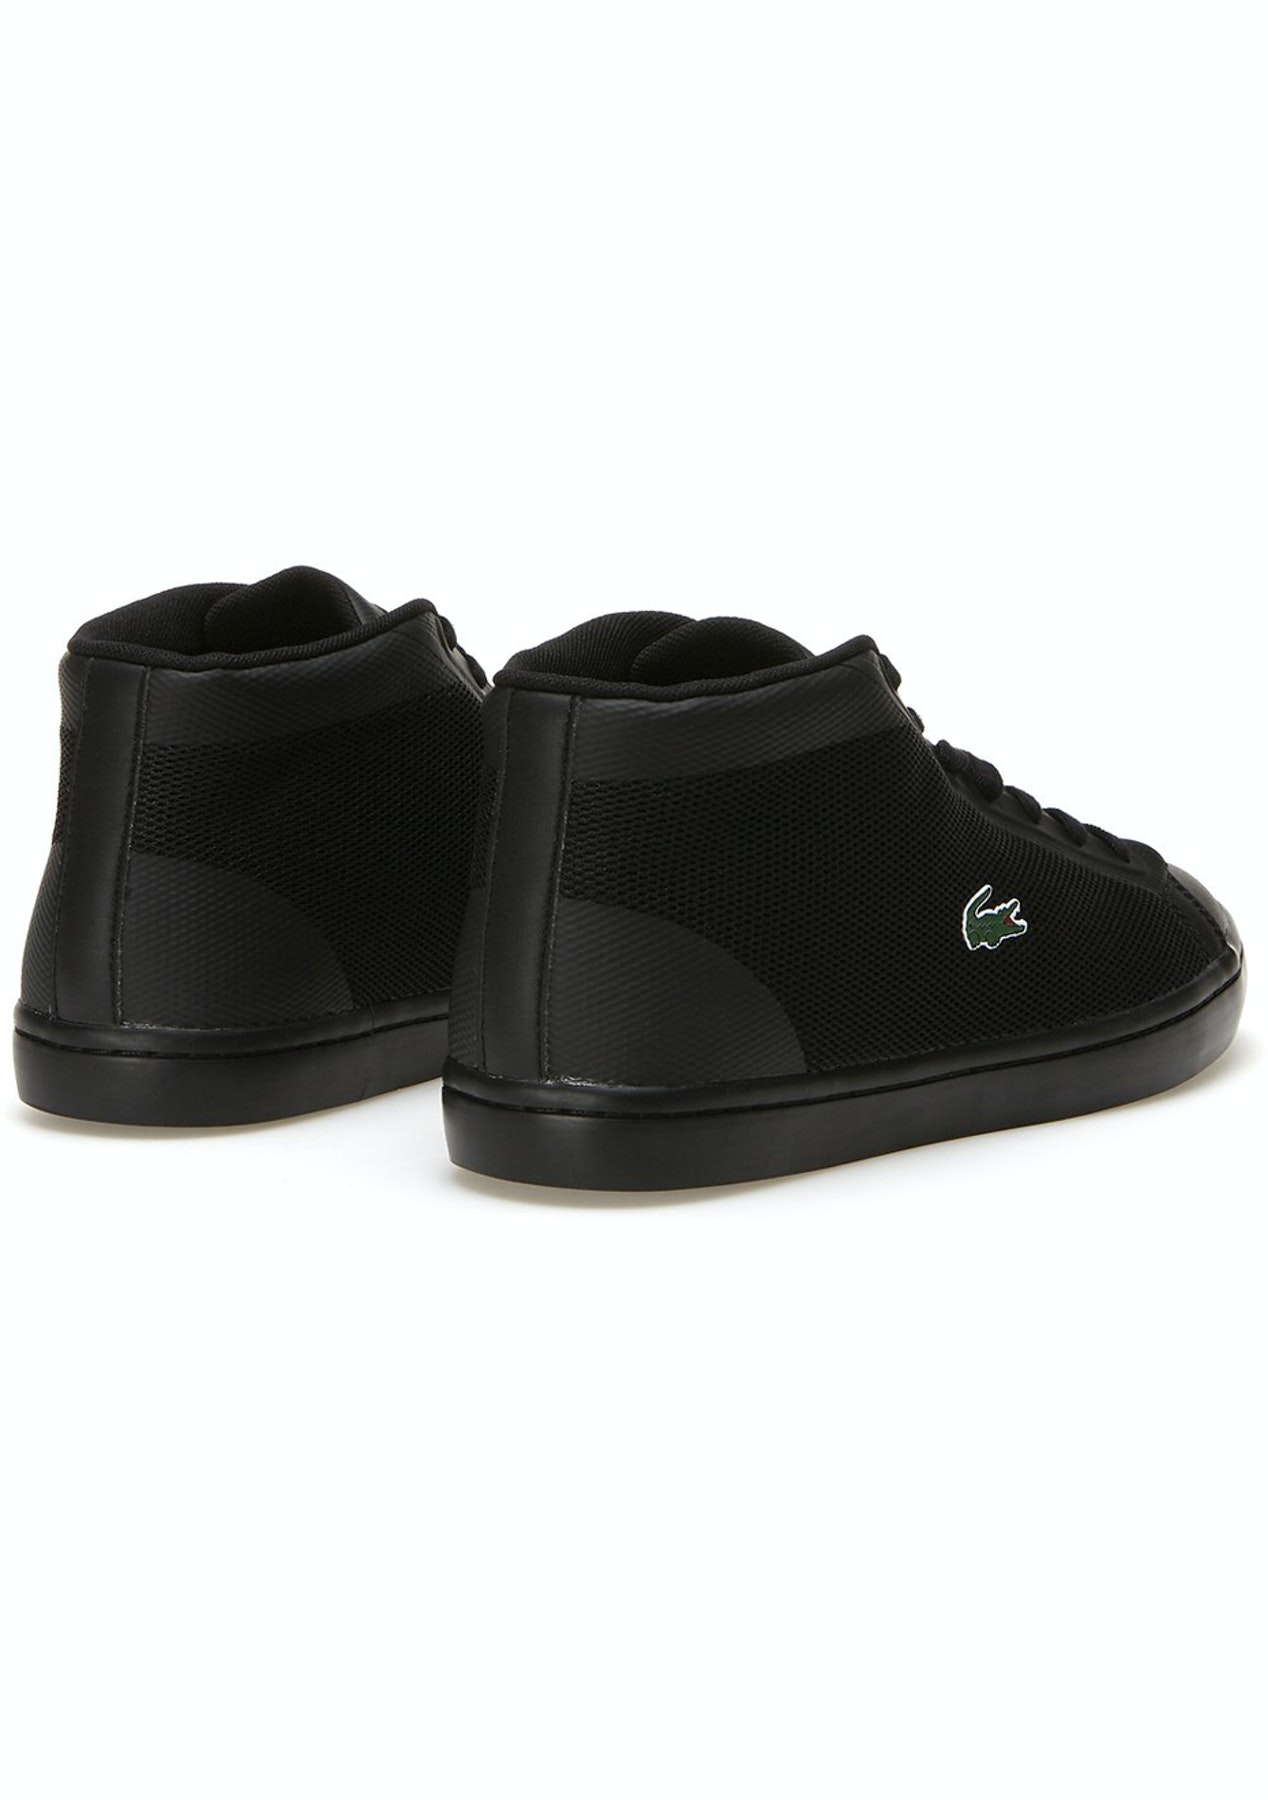 72a01cb28e Mens Lacoste - Straightset Chukka 316 1 - Black/Black - Lacoste 24 Hours  Only - Onceit